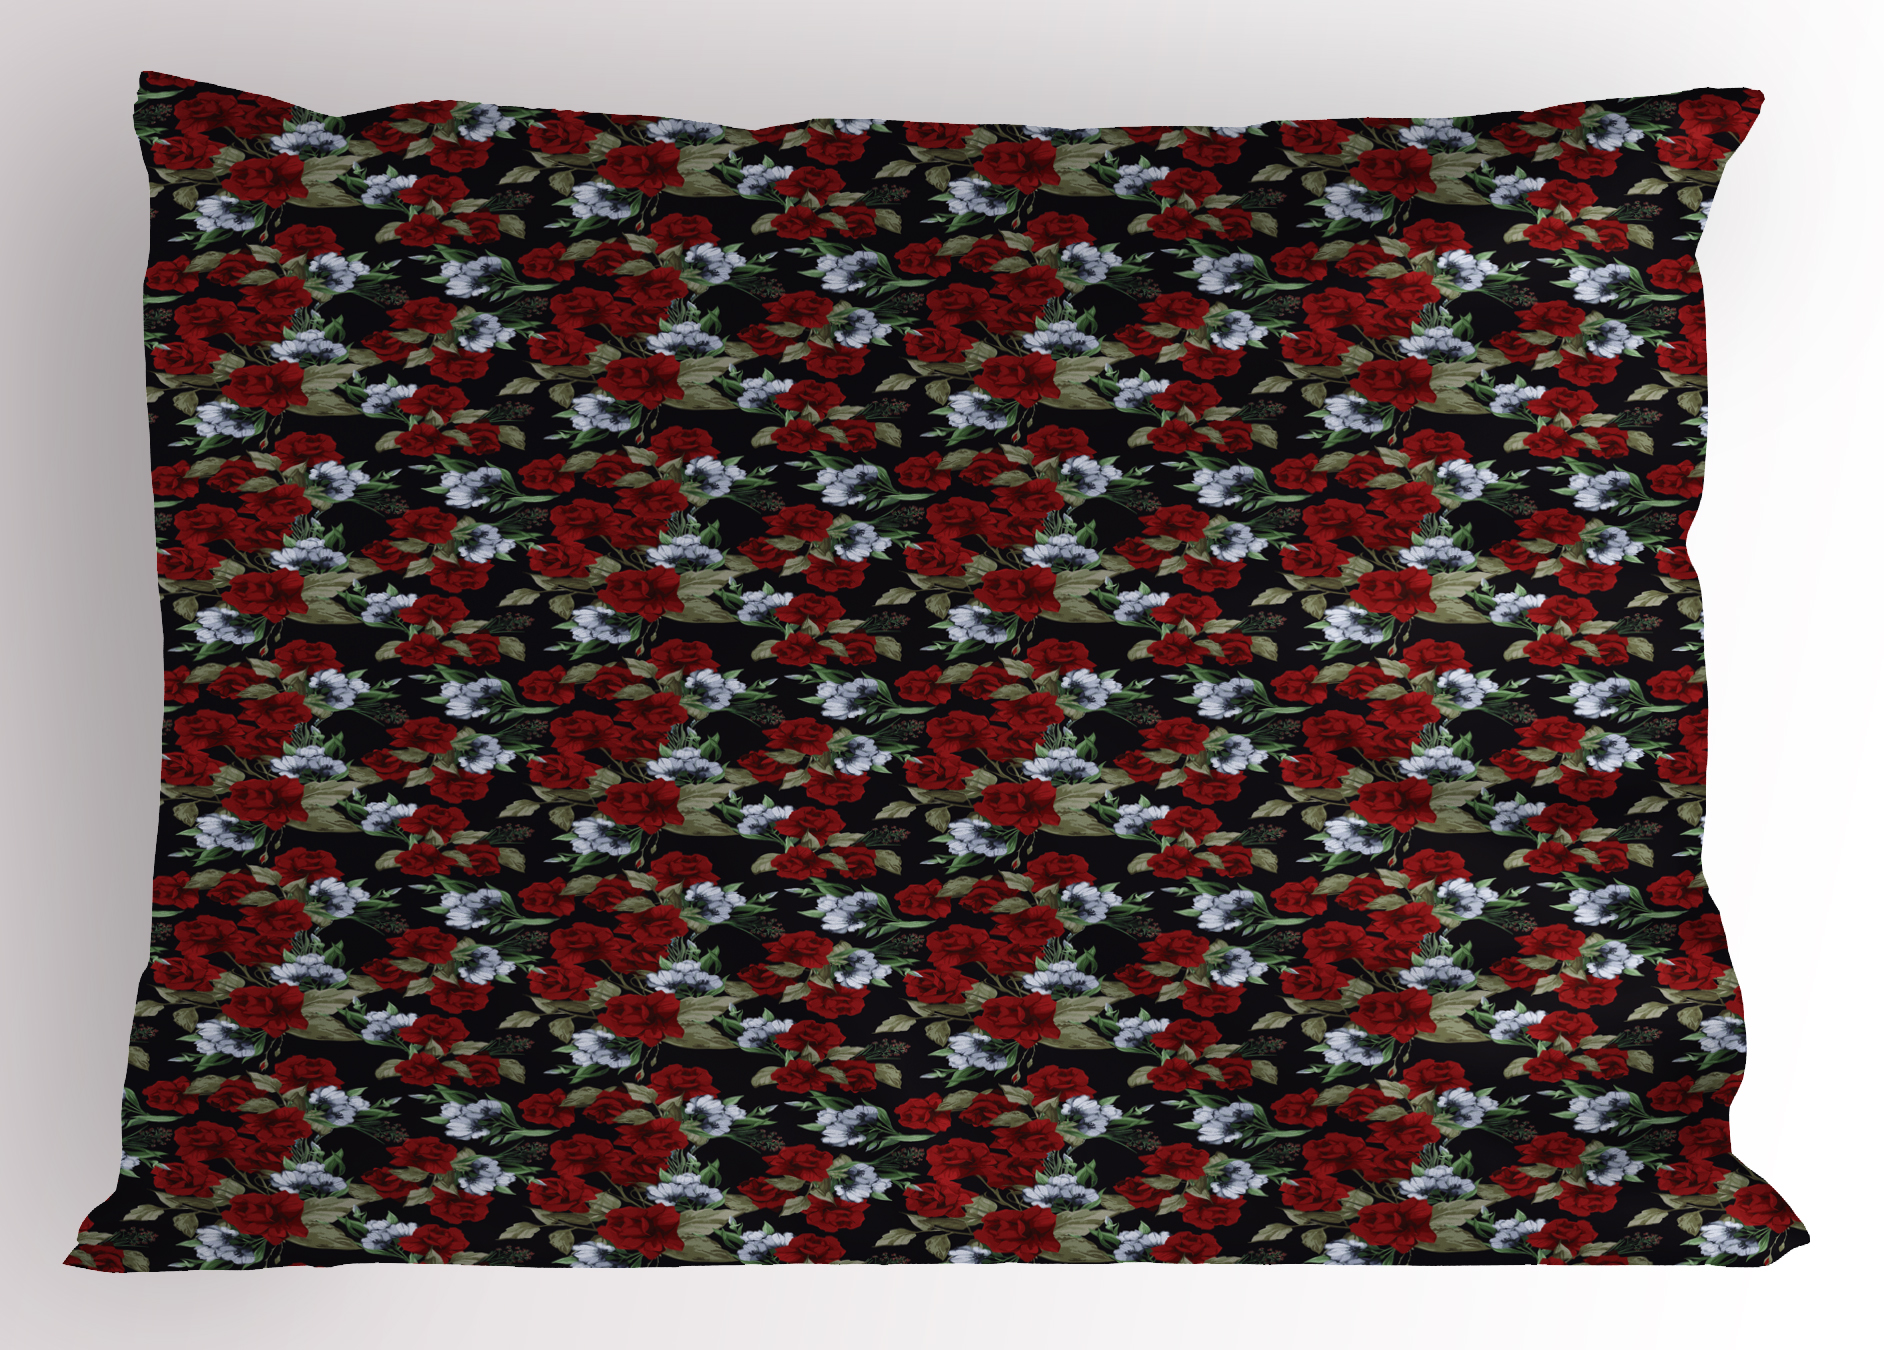 Red And Black Pillow Sham Floral Pattern With Romantic